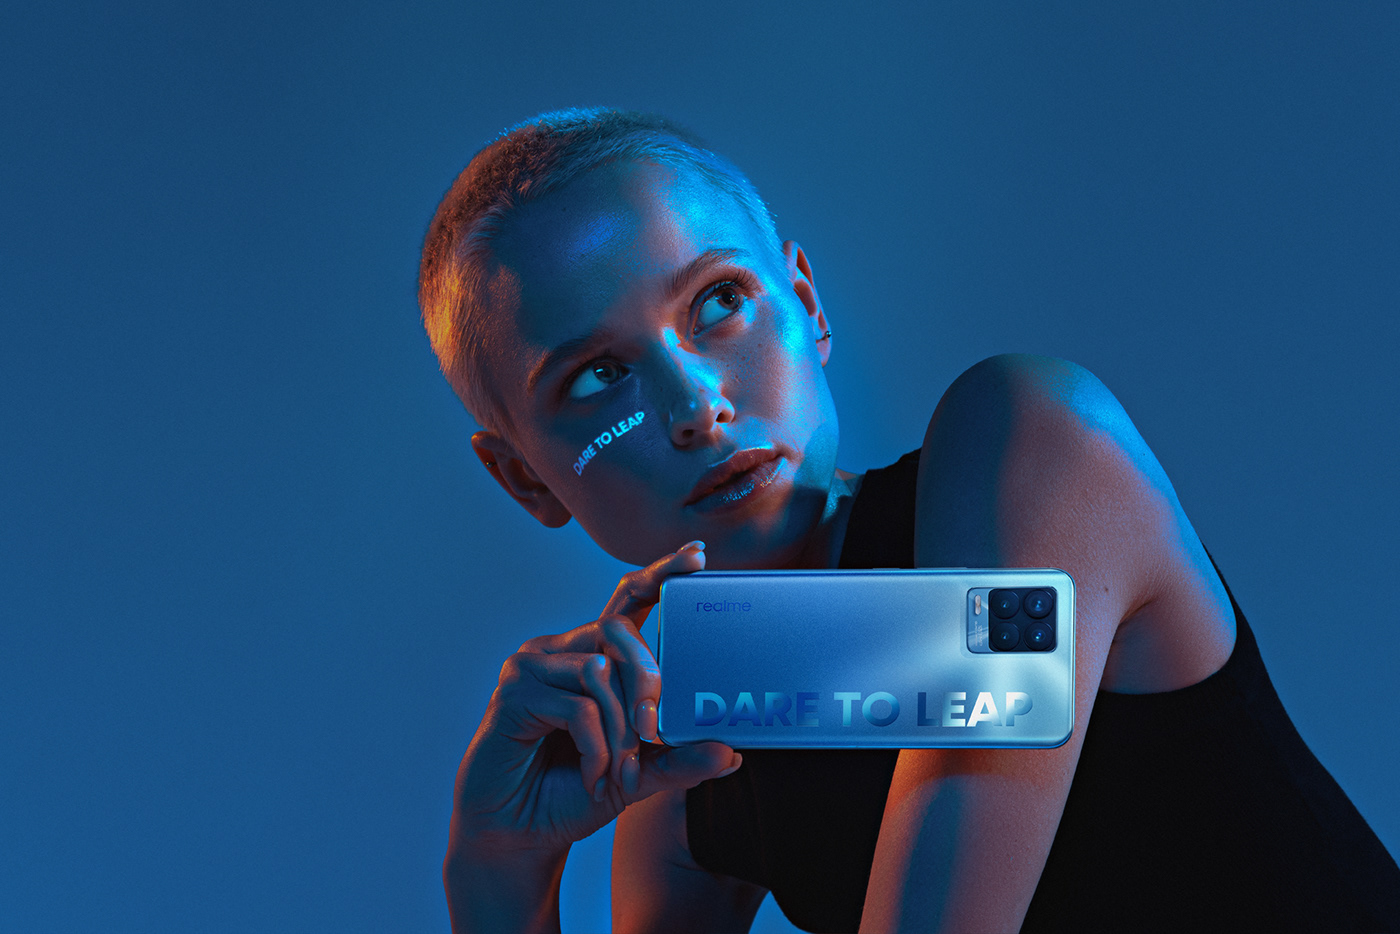 commercial commission Creative Photography dare to leap mobile brand neon portrait projection realme smartphone